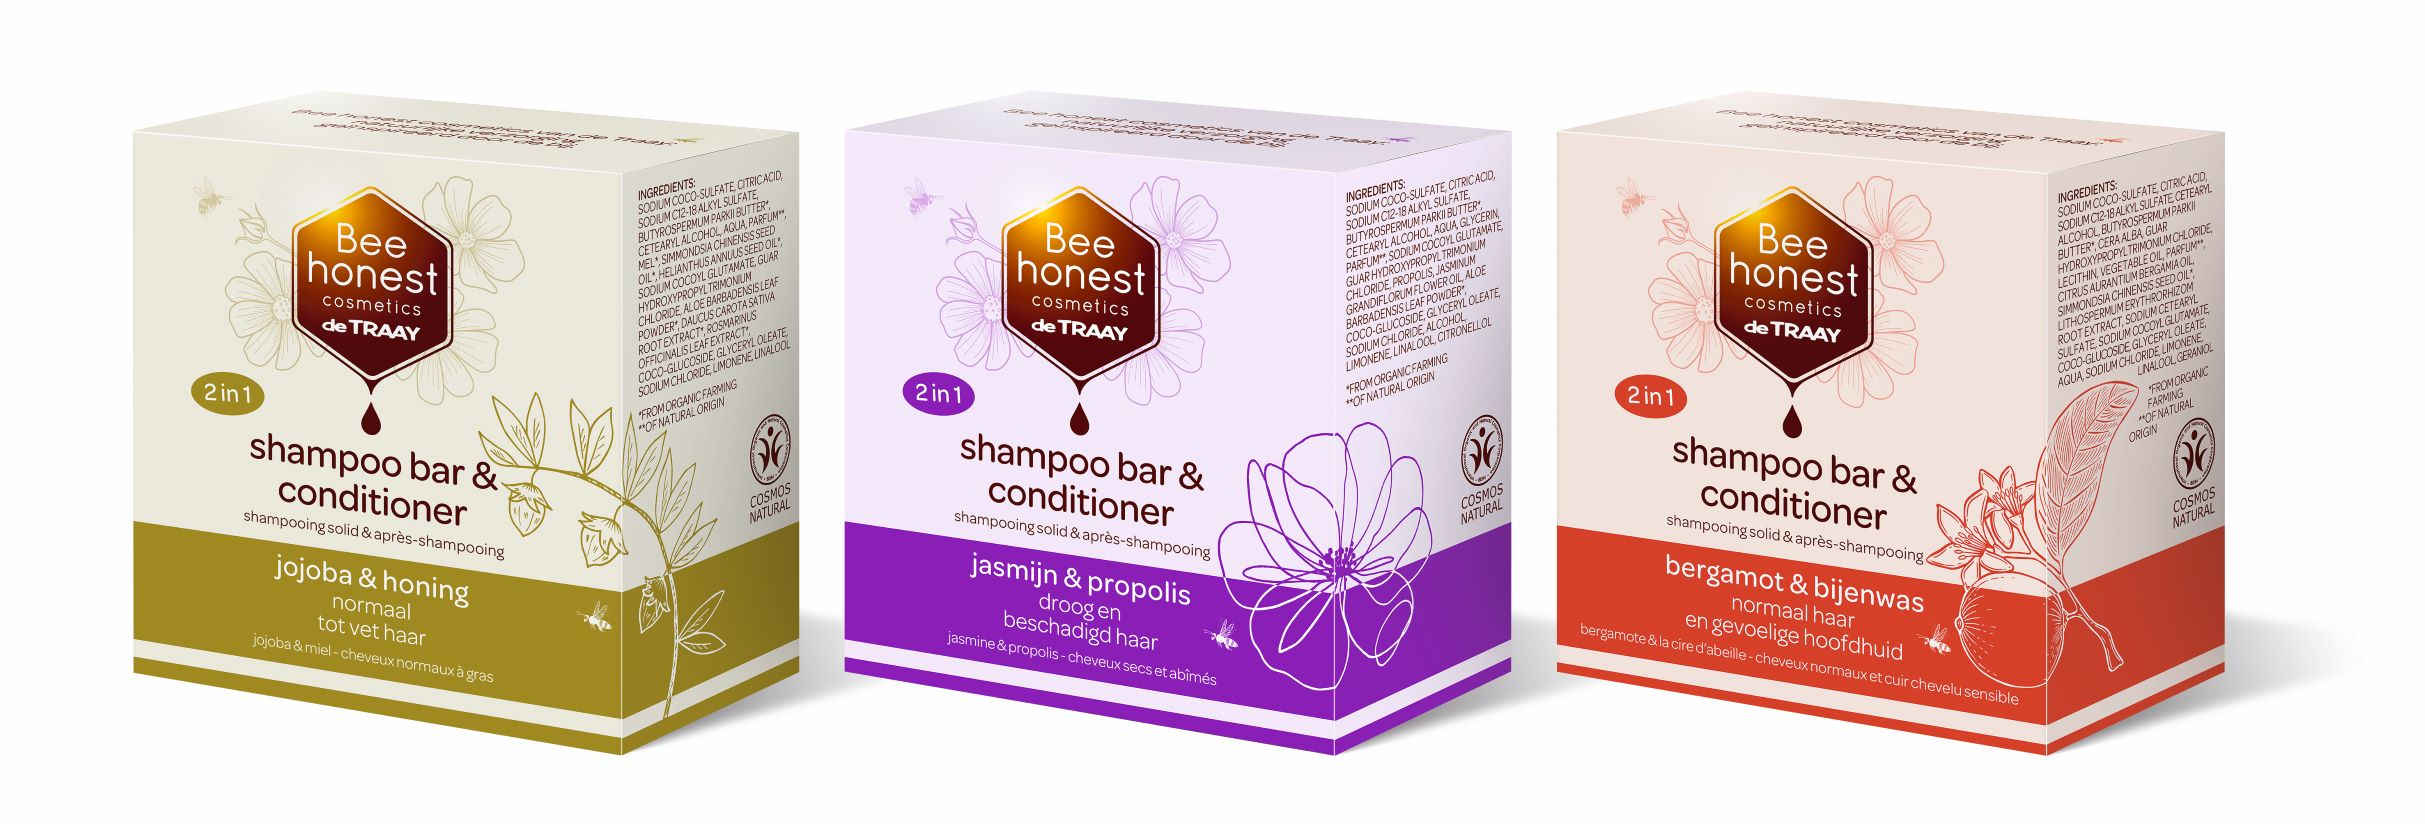 New: shampoo bar with conditioner!